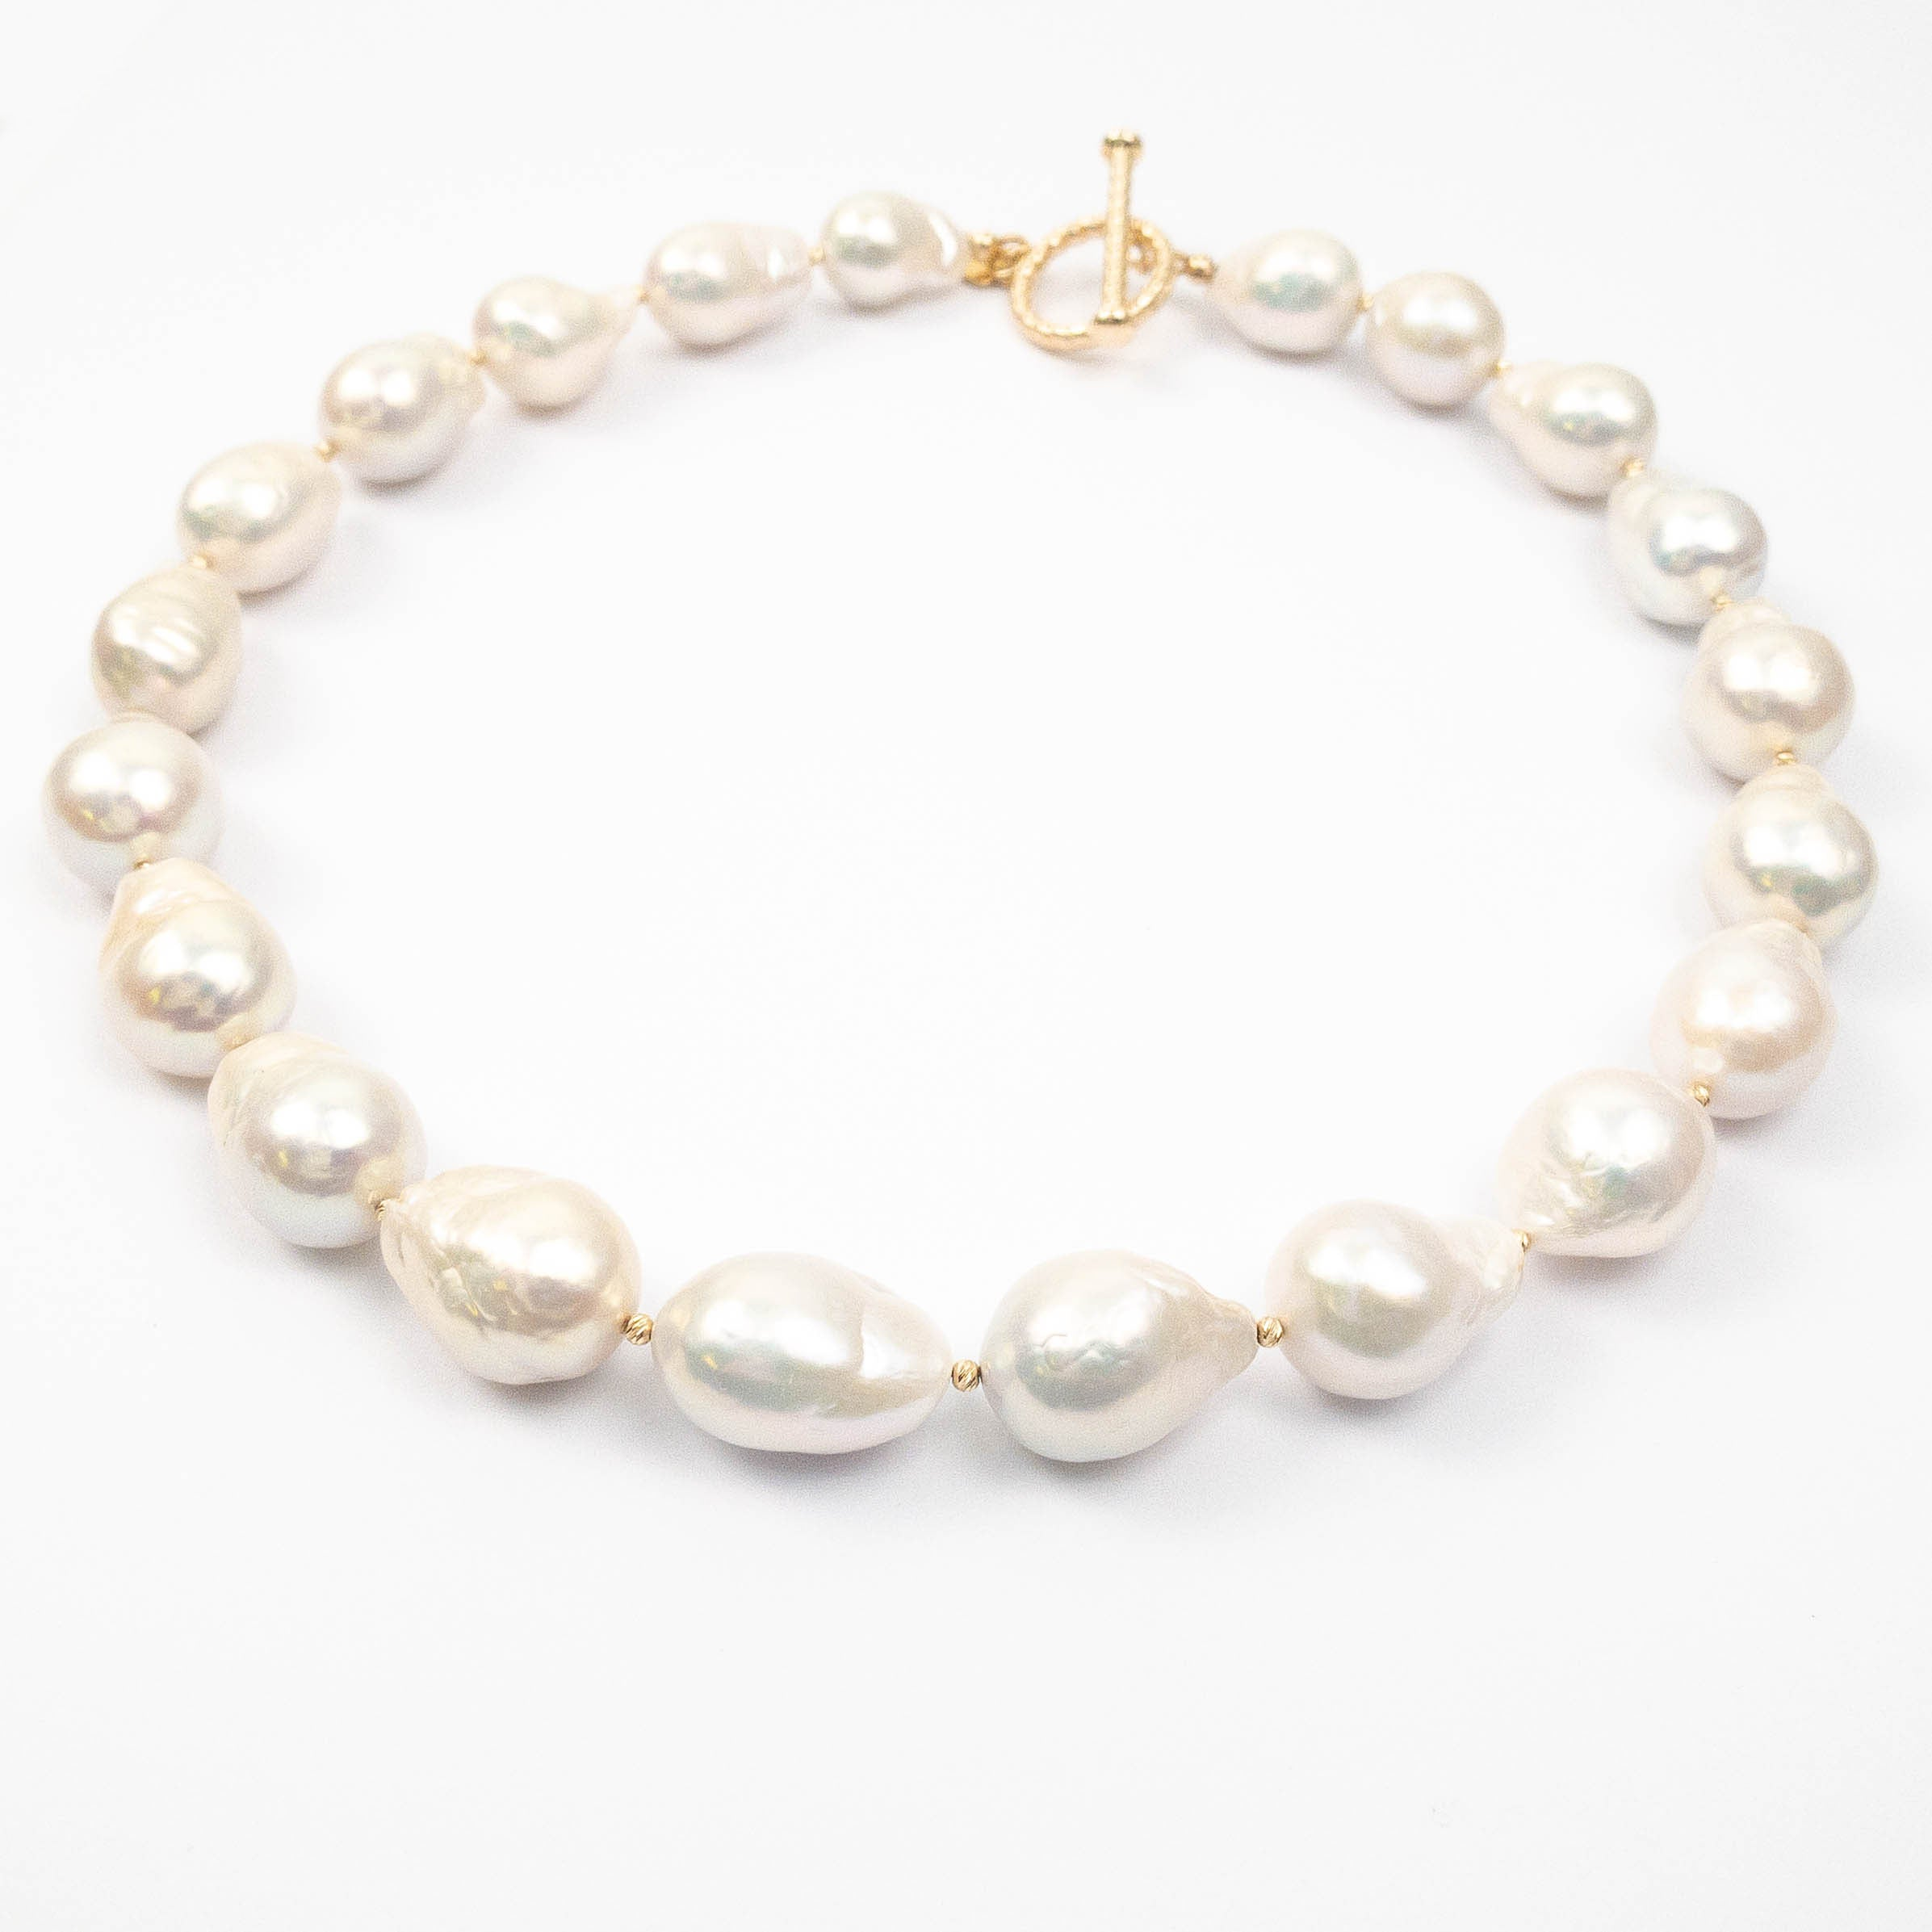 14k Gold & White Baroque Pearl Necklace